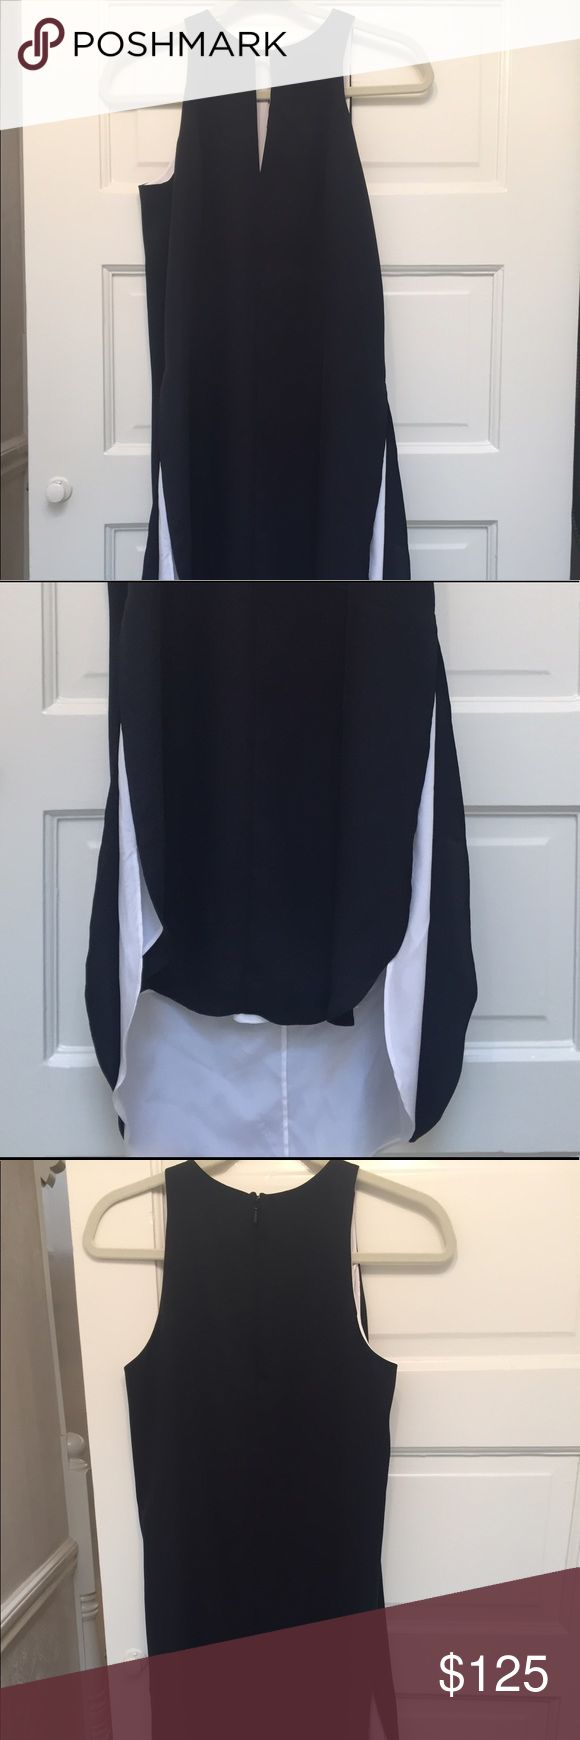 ✨SALE!!! Rag & Bone Black and White Cocktail dress Rag & Bone Black and White Cocktail dress with front keyhole. Absolutely perfect for a wedding or cocktail party! Worn only a handful of times. rag & bone Dresses